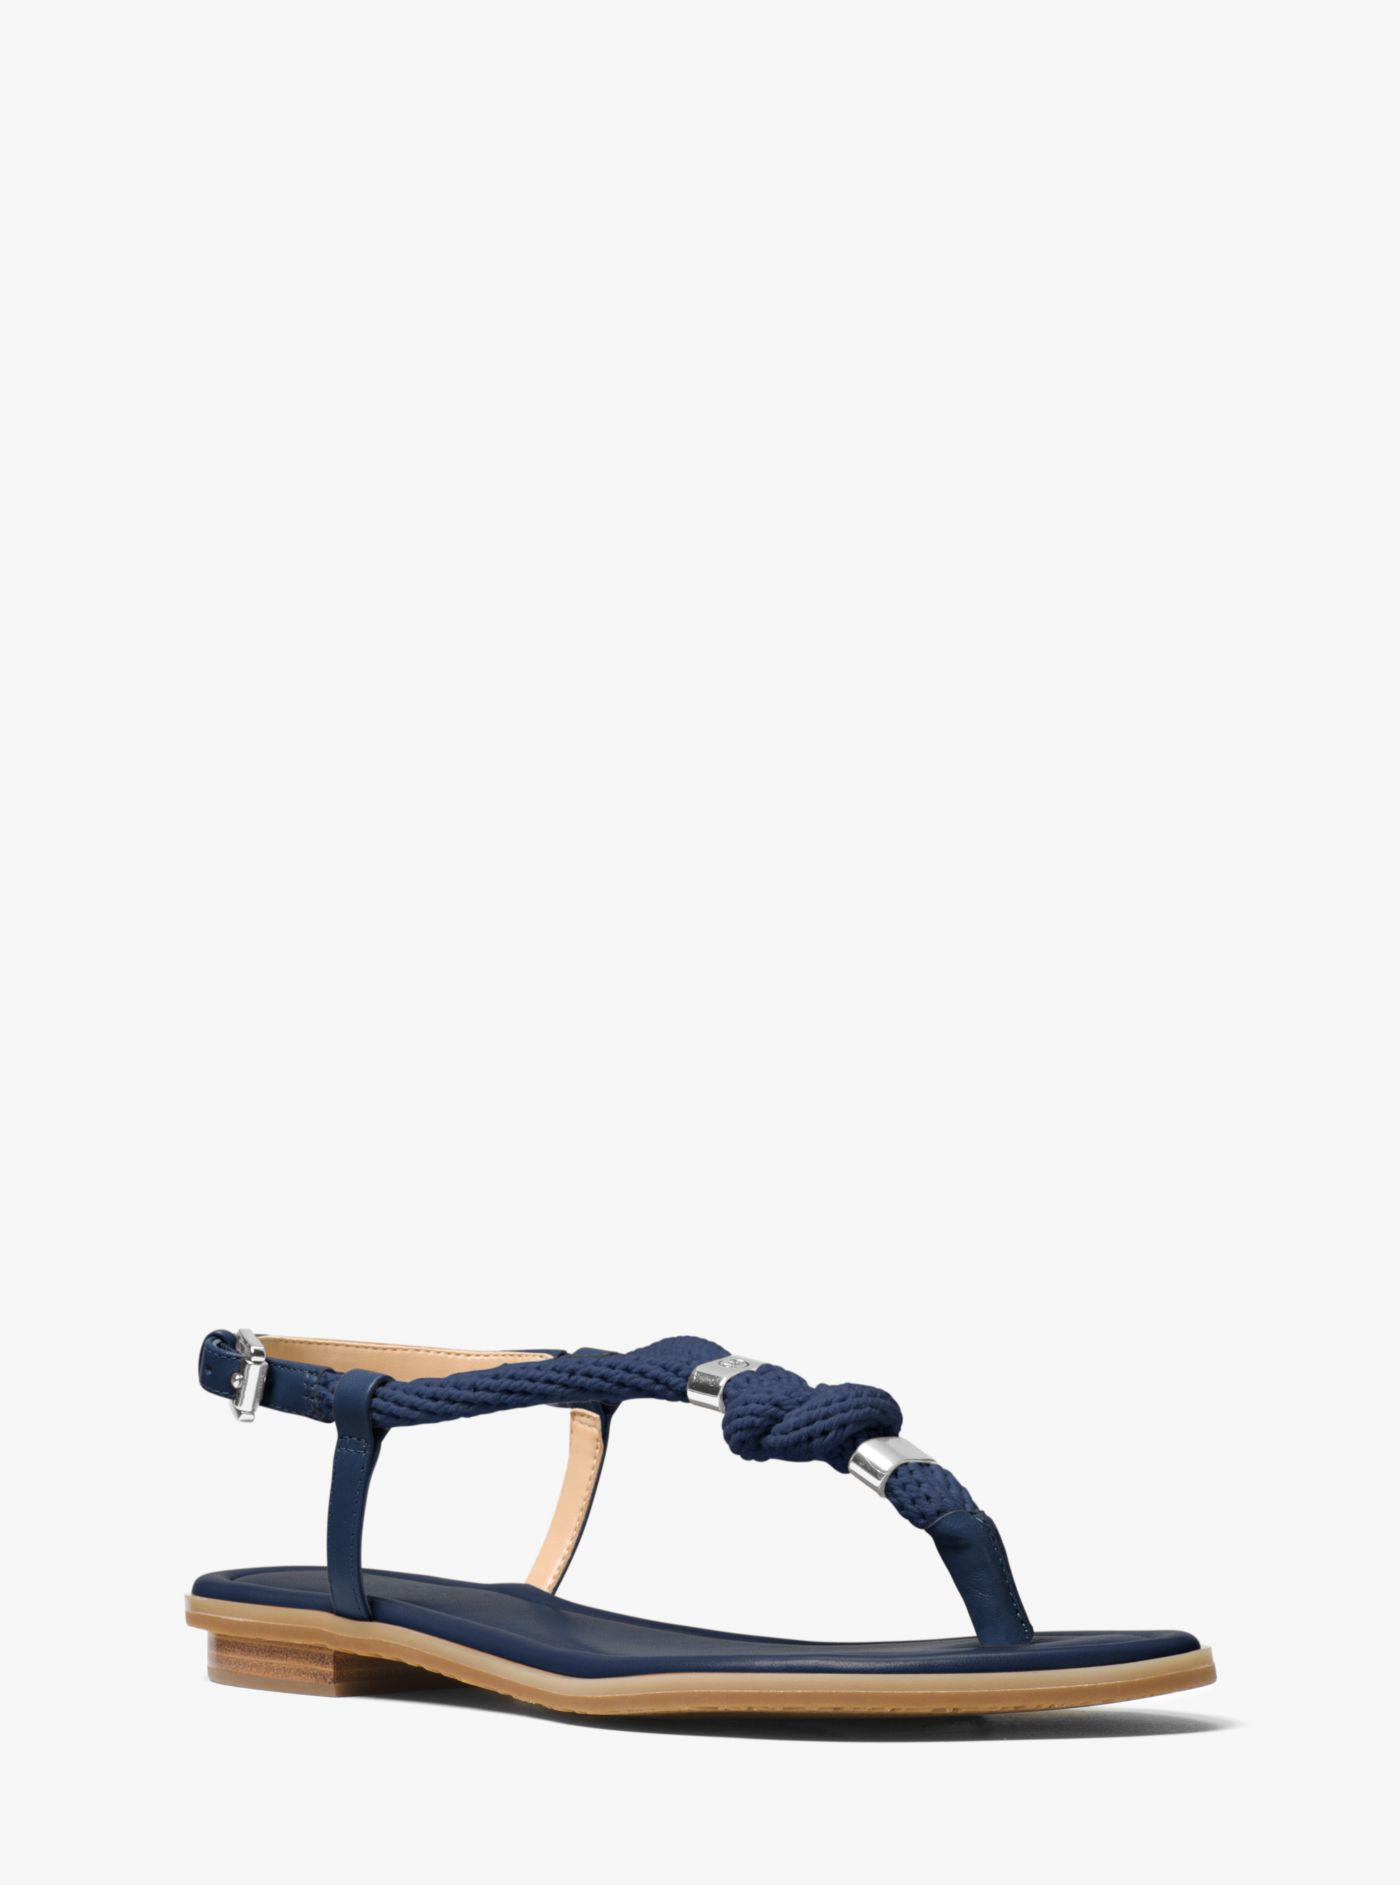 eb37c013adc6 Lyst - Michael Kors Holly Rope-trim Leather Sandal in Blue